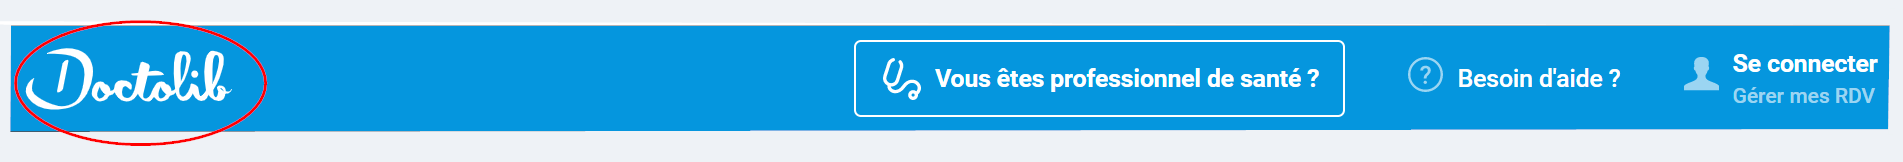 bouton_accueil.png